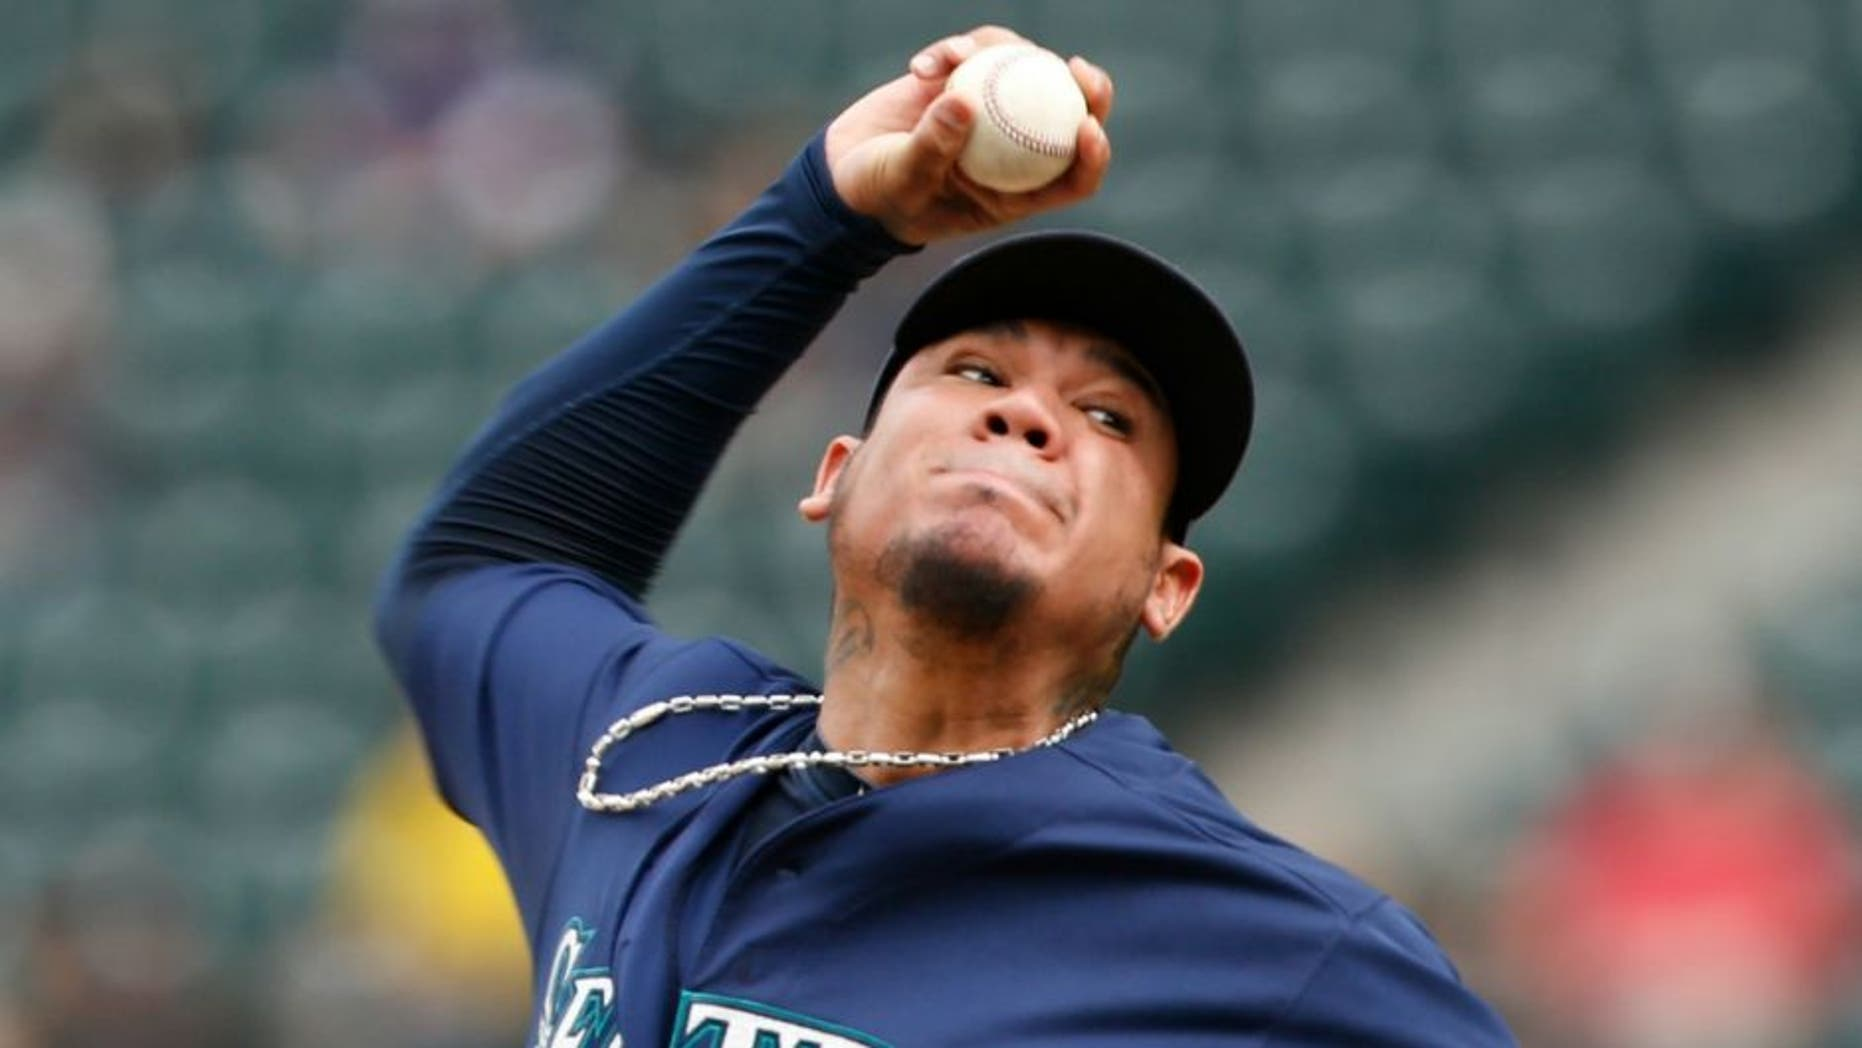 Sep 5, 2016; Seattle, WA, USA; Seattle Mariners starting pitcher Felix Hernandez (34) throws against the Texas Rangers during the third inning at Safeco Field. Mandatory Credit: Joe Nicholson-USA TODAY Sports